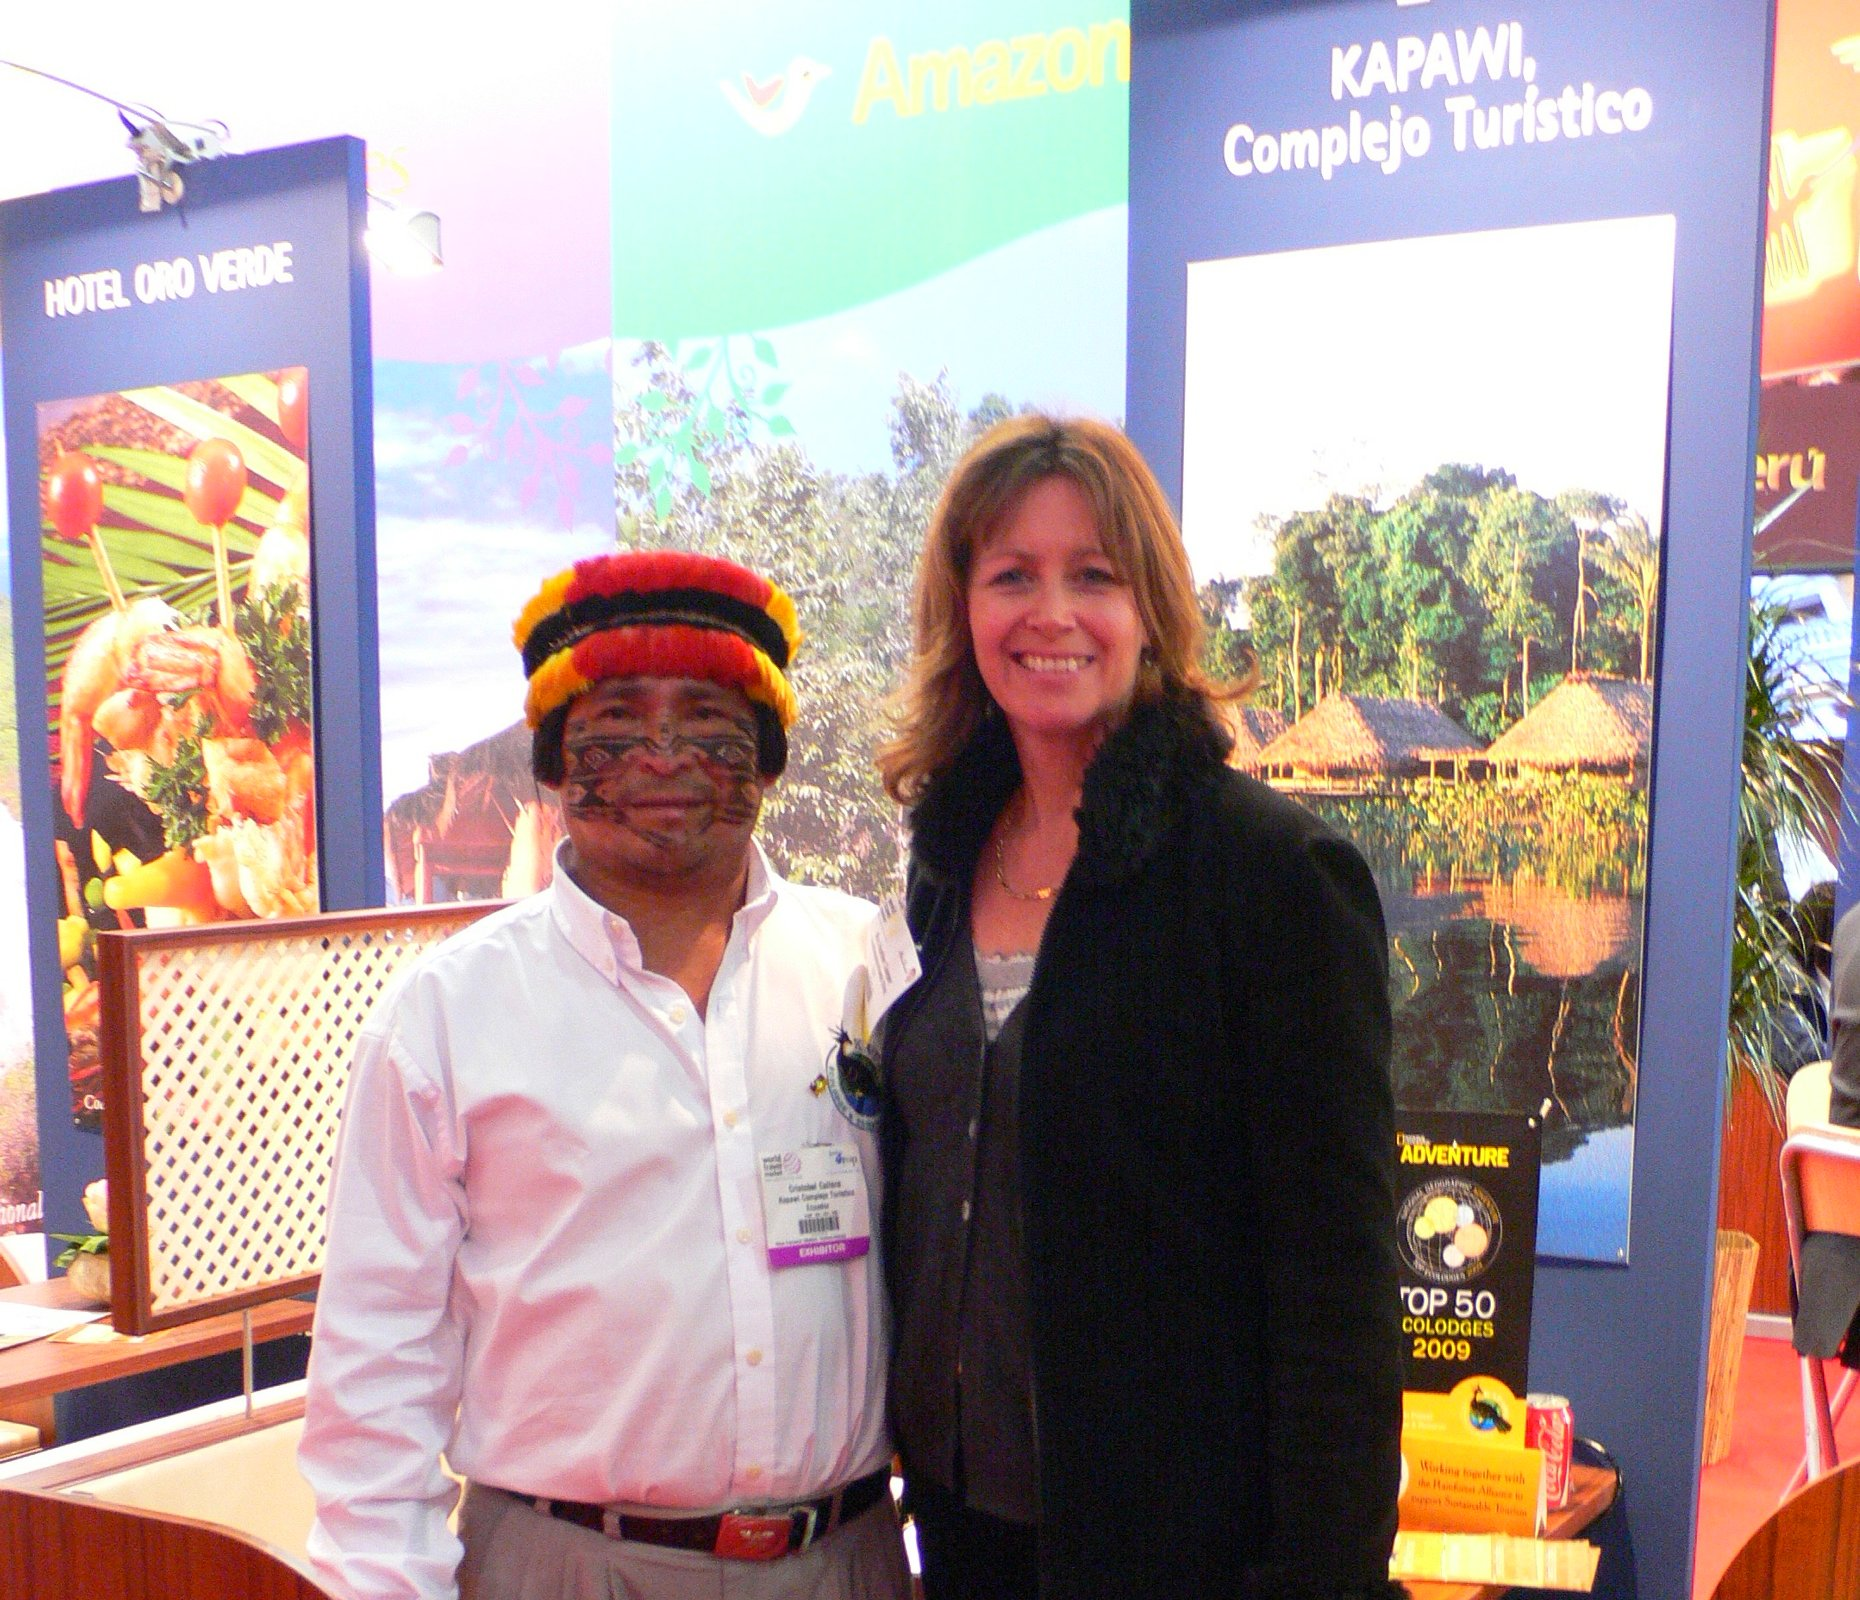 On the Kapawi stand at the World Travel Market, London